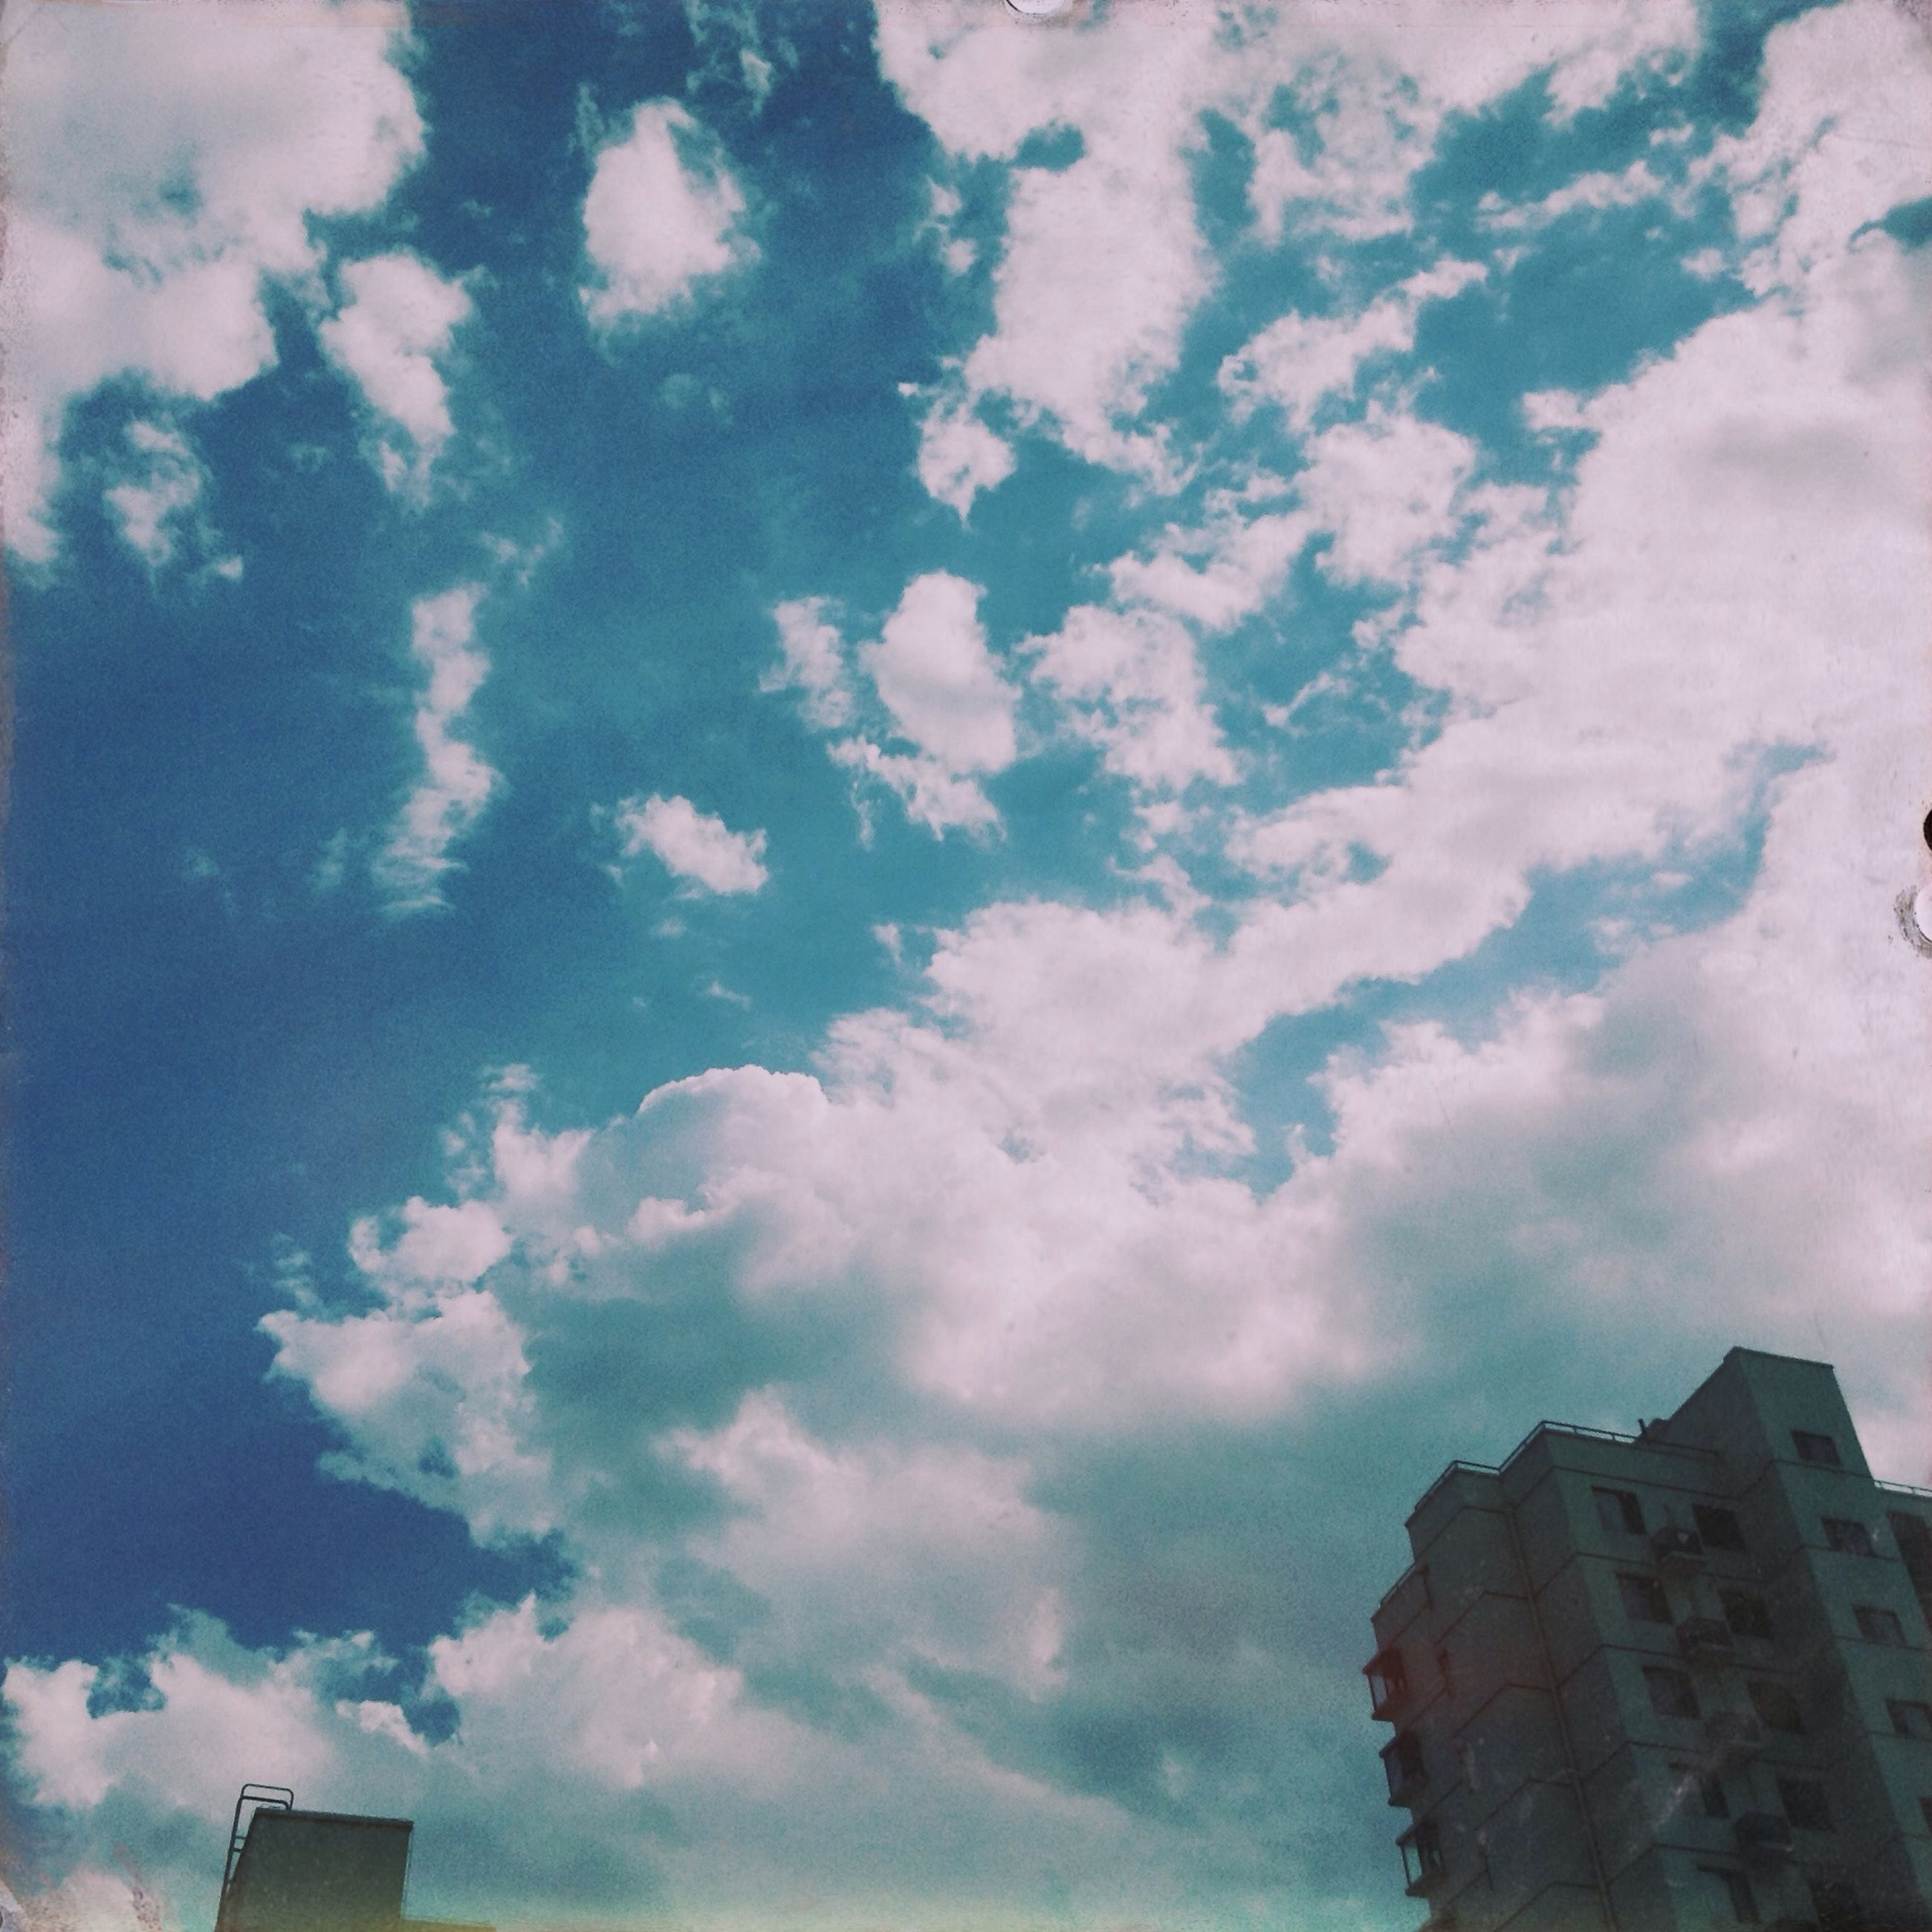 low angle view, architecture, building exterior, built structure, sky, cloud - sky, cloudy, building, cloud, high section, outdoors, day, no people, weather, city, residential building, nature, residential structure, house, overcast